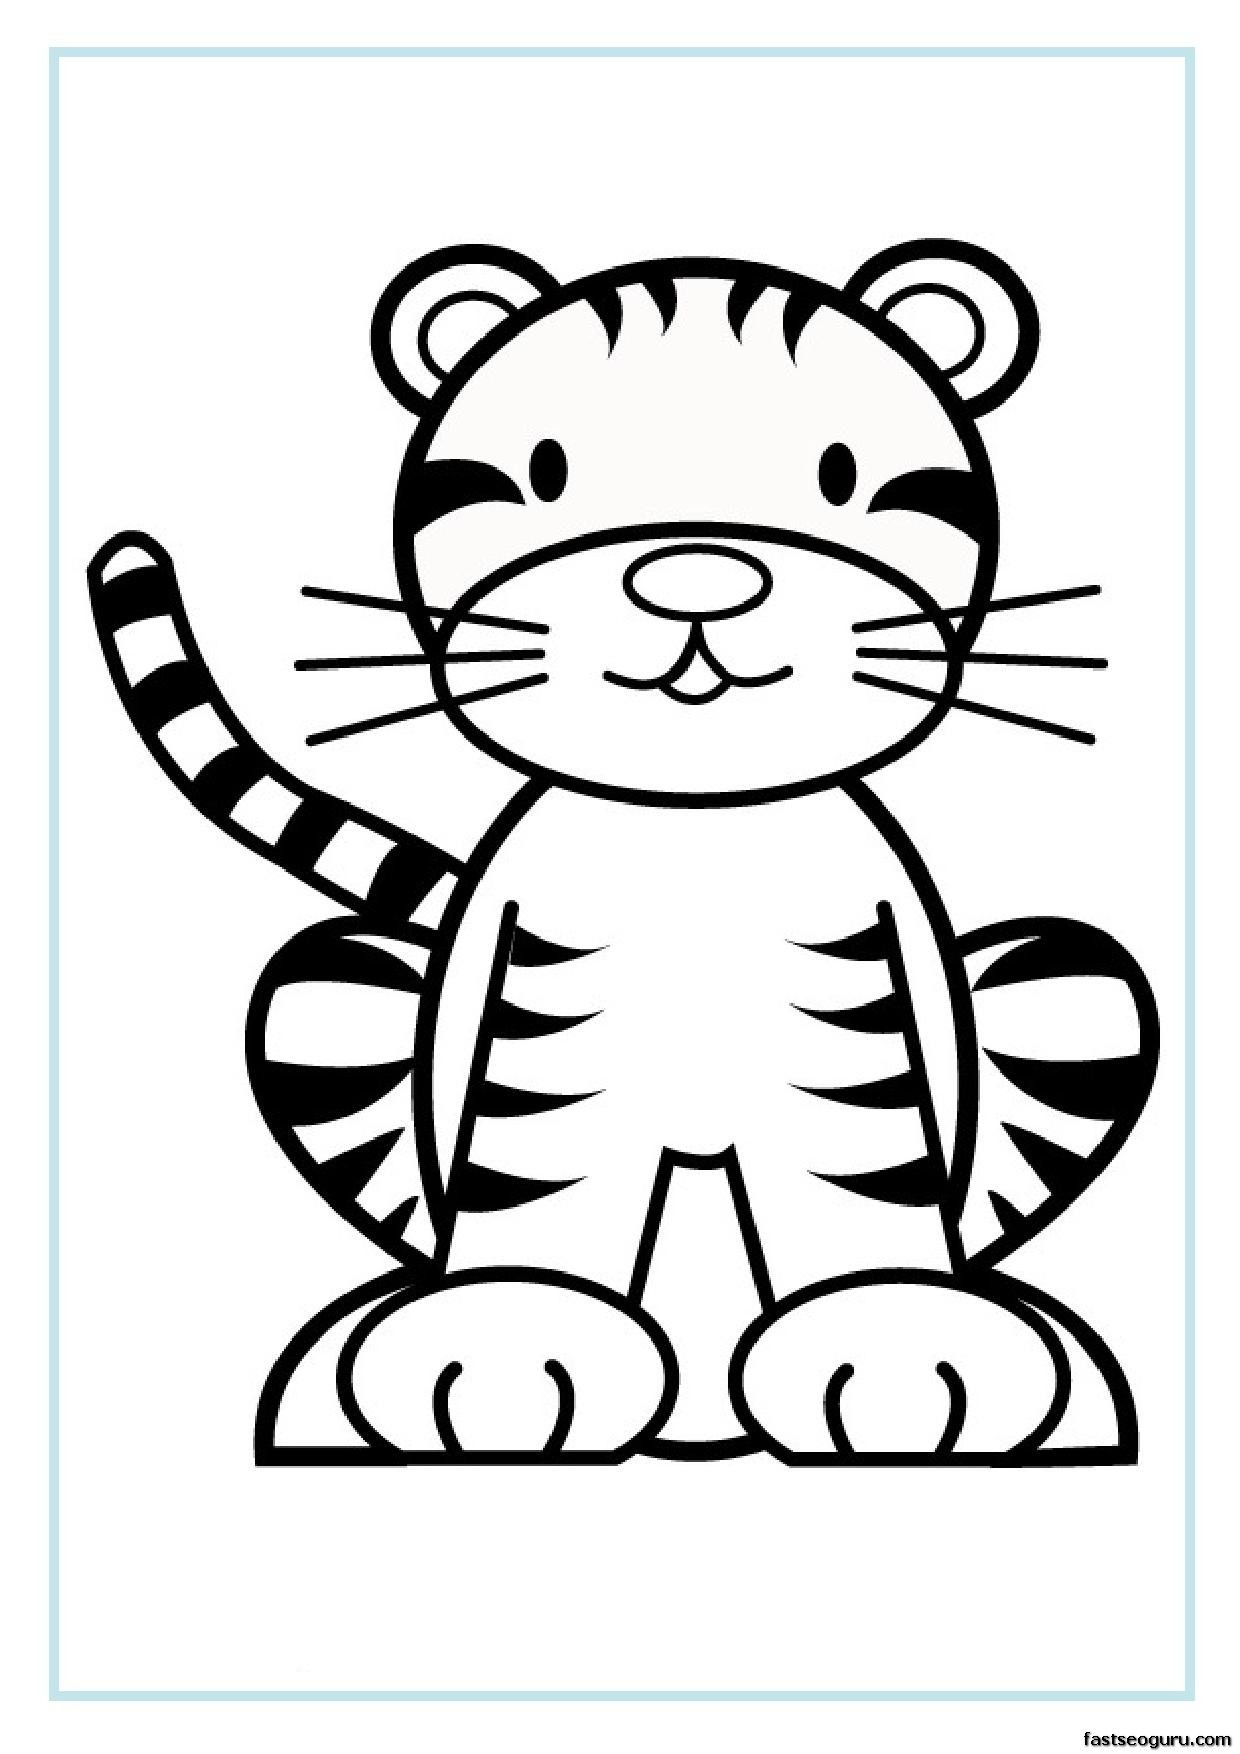 Free Printable Animal Tiger Baby Colouring Sheet For Kids